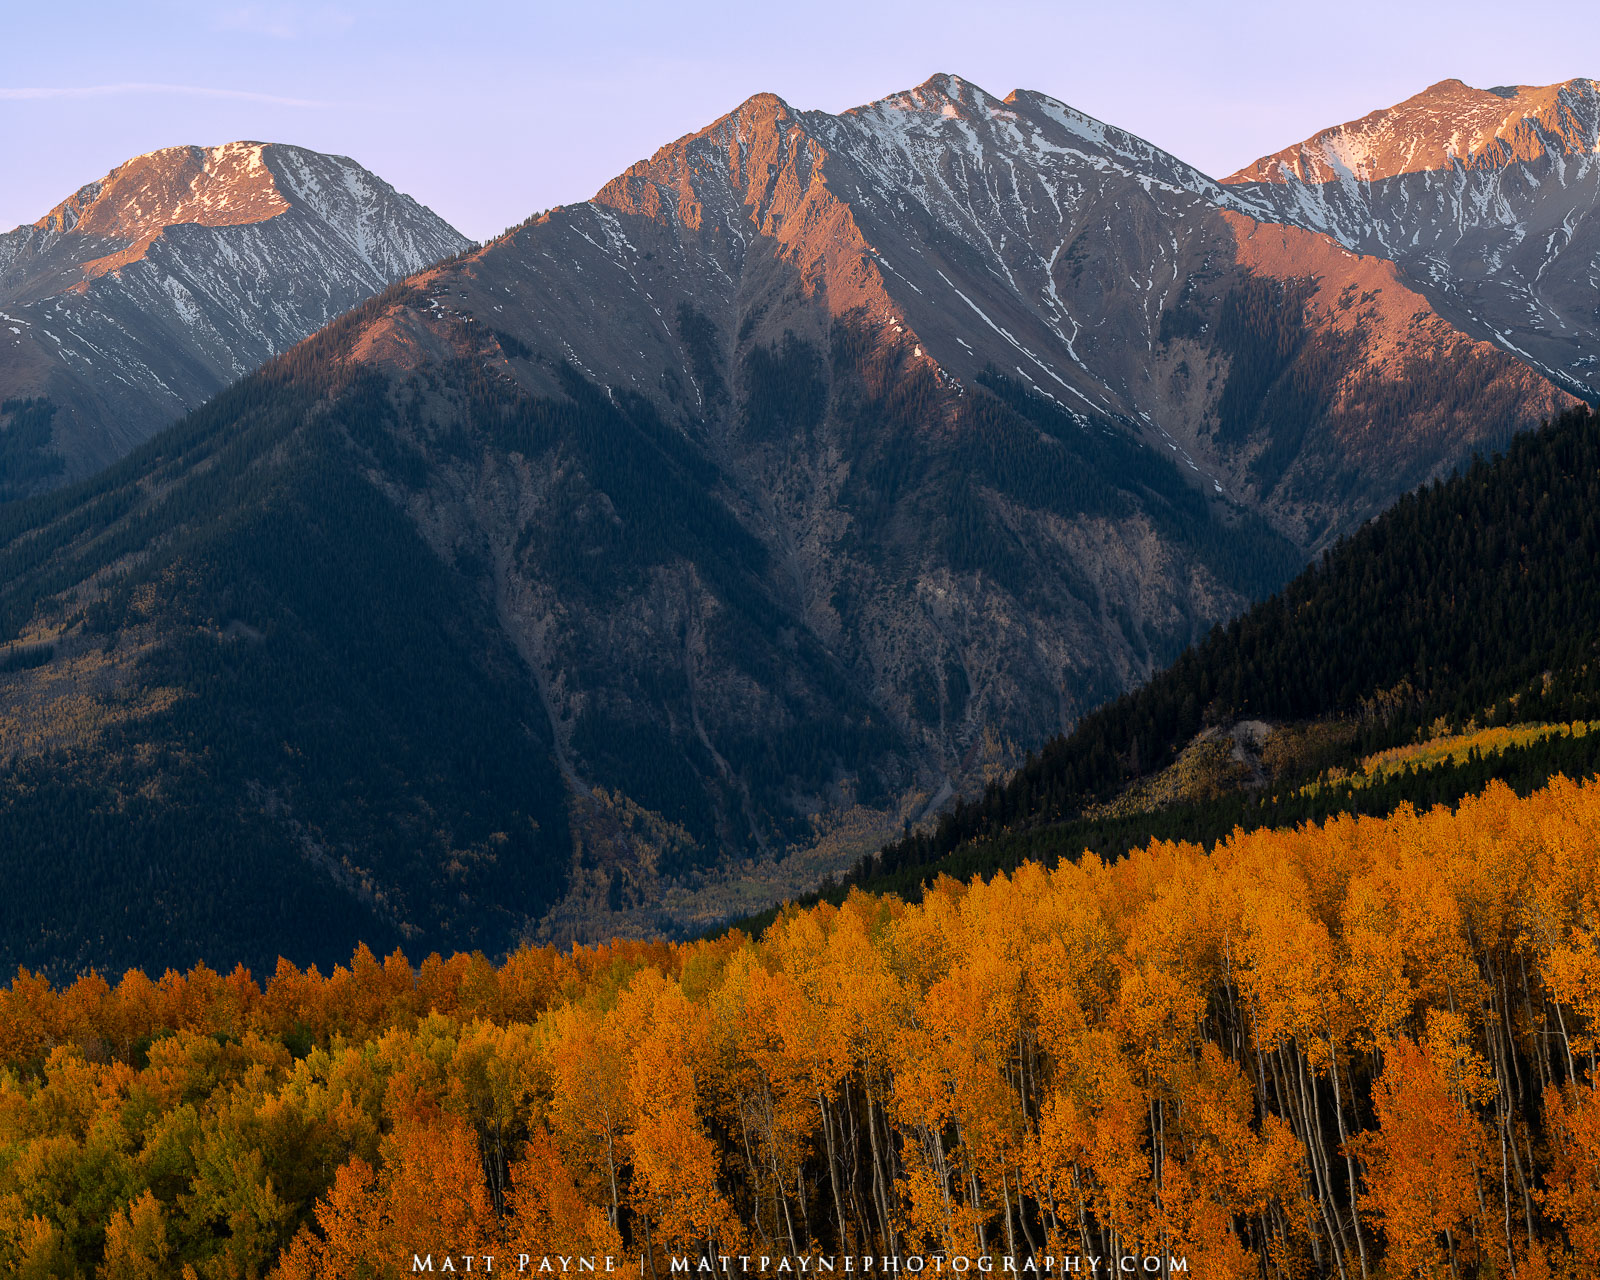 Mount Hope and Rinker Peak are illuminated by early sunrise light in autumn showcasing fall colors from the glorious transition...